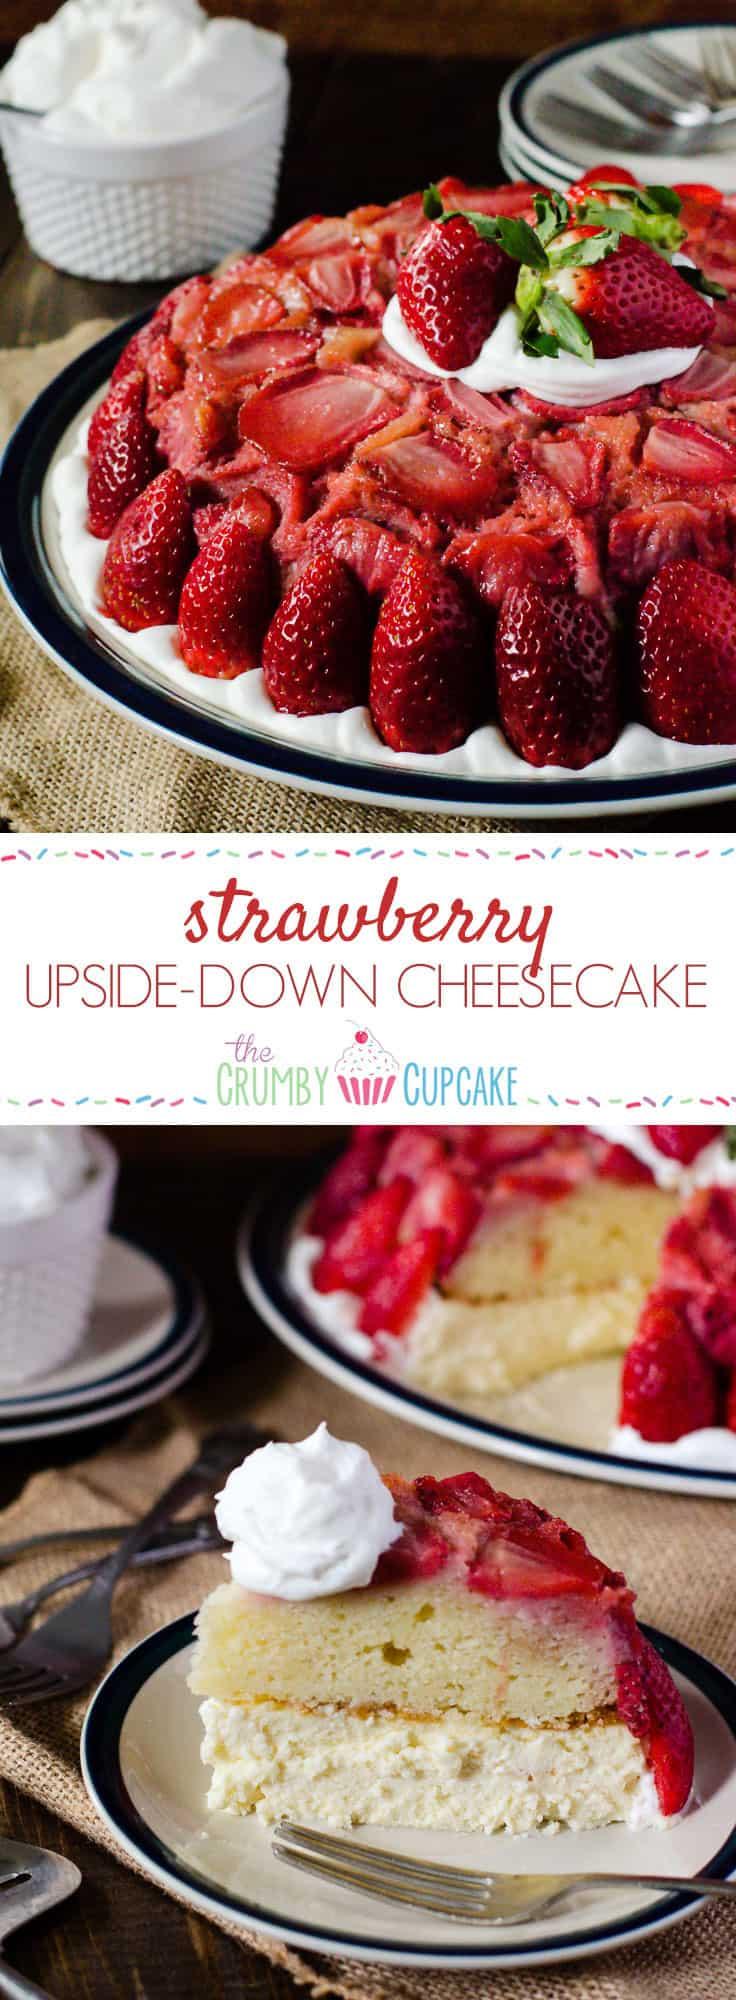 Strawberry Upside-Down Cheesecake | A shortcake twist on a classic upside down cake, stacked on top of creamy vanilla bean cheesecake, then studded with fresh Florida strawberries - a beautiful winter treat!